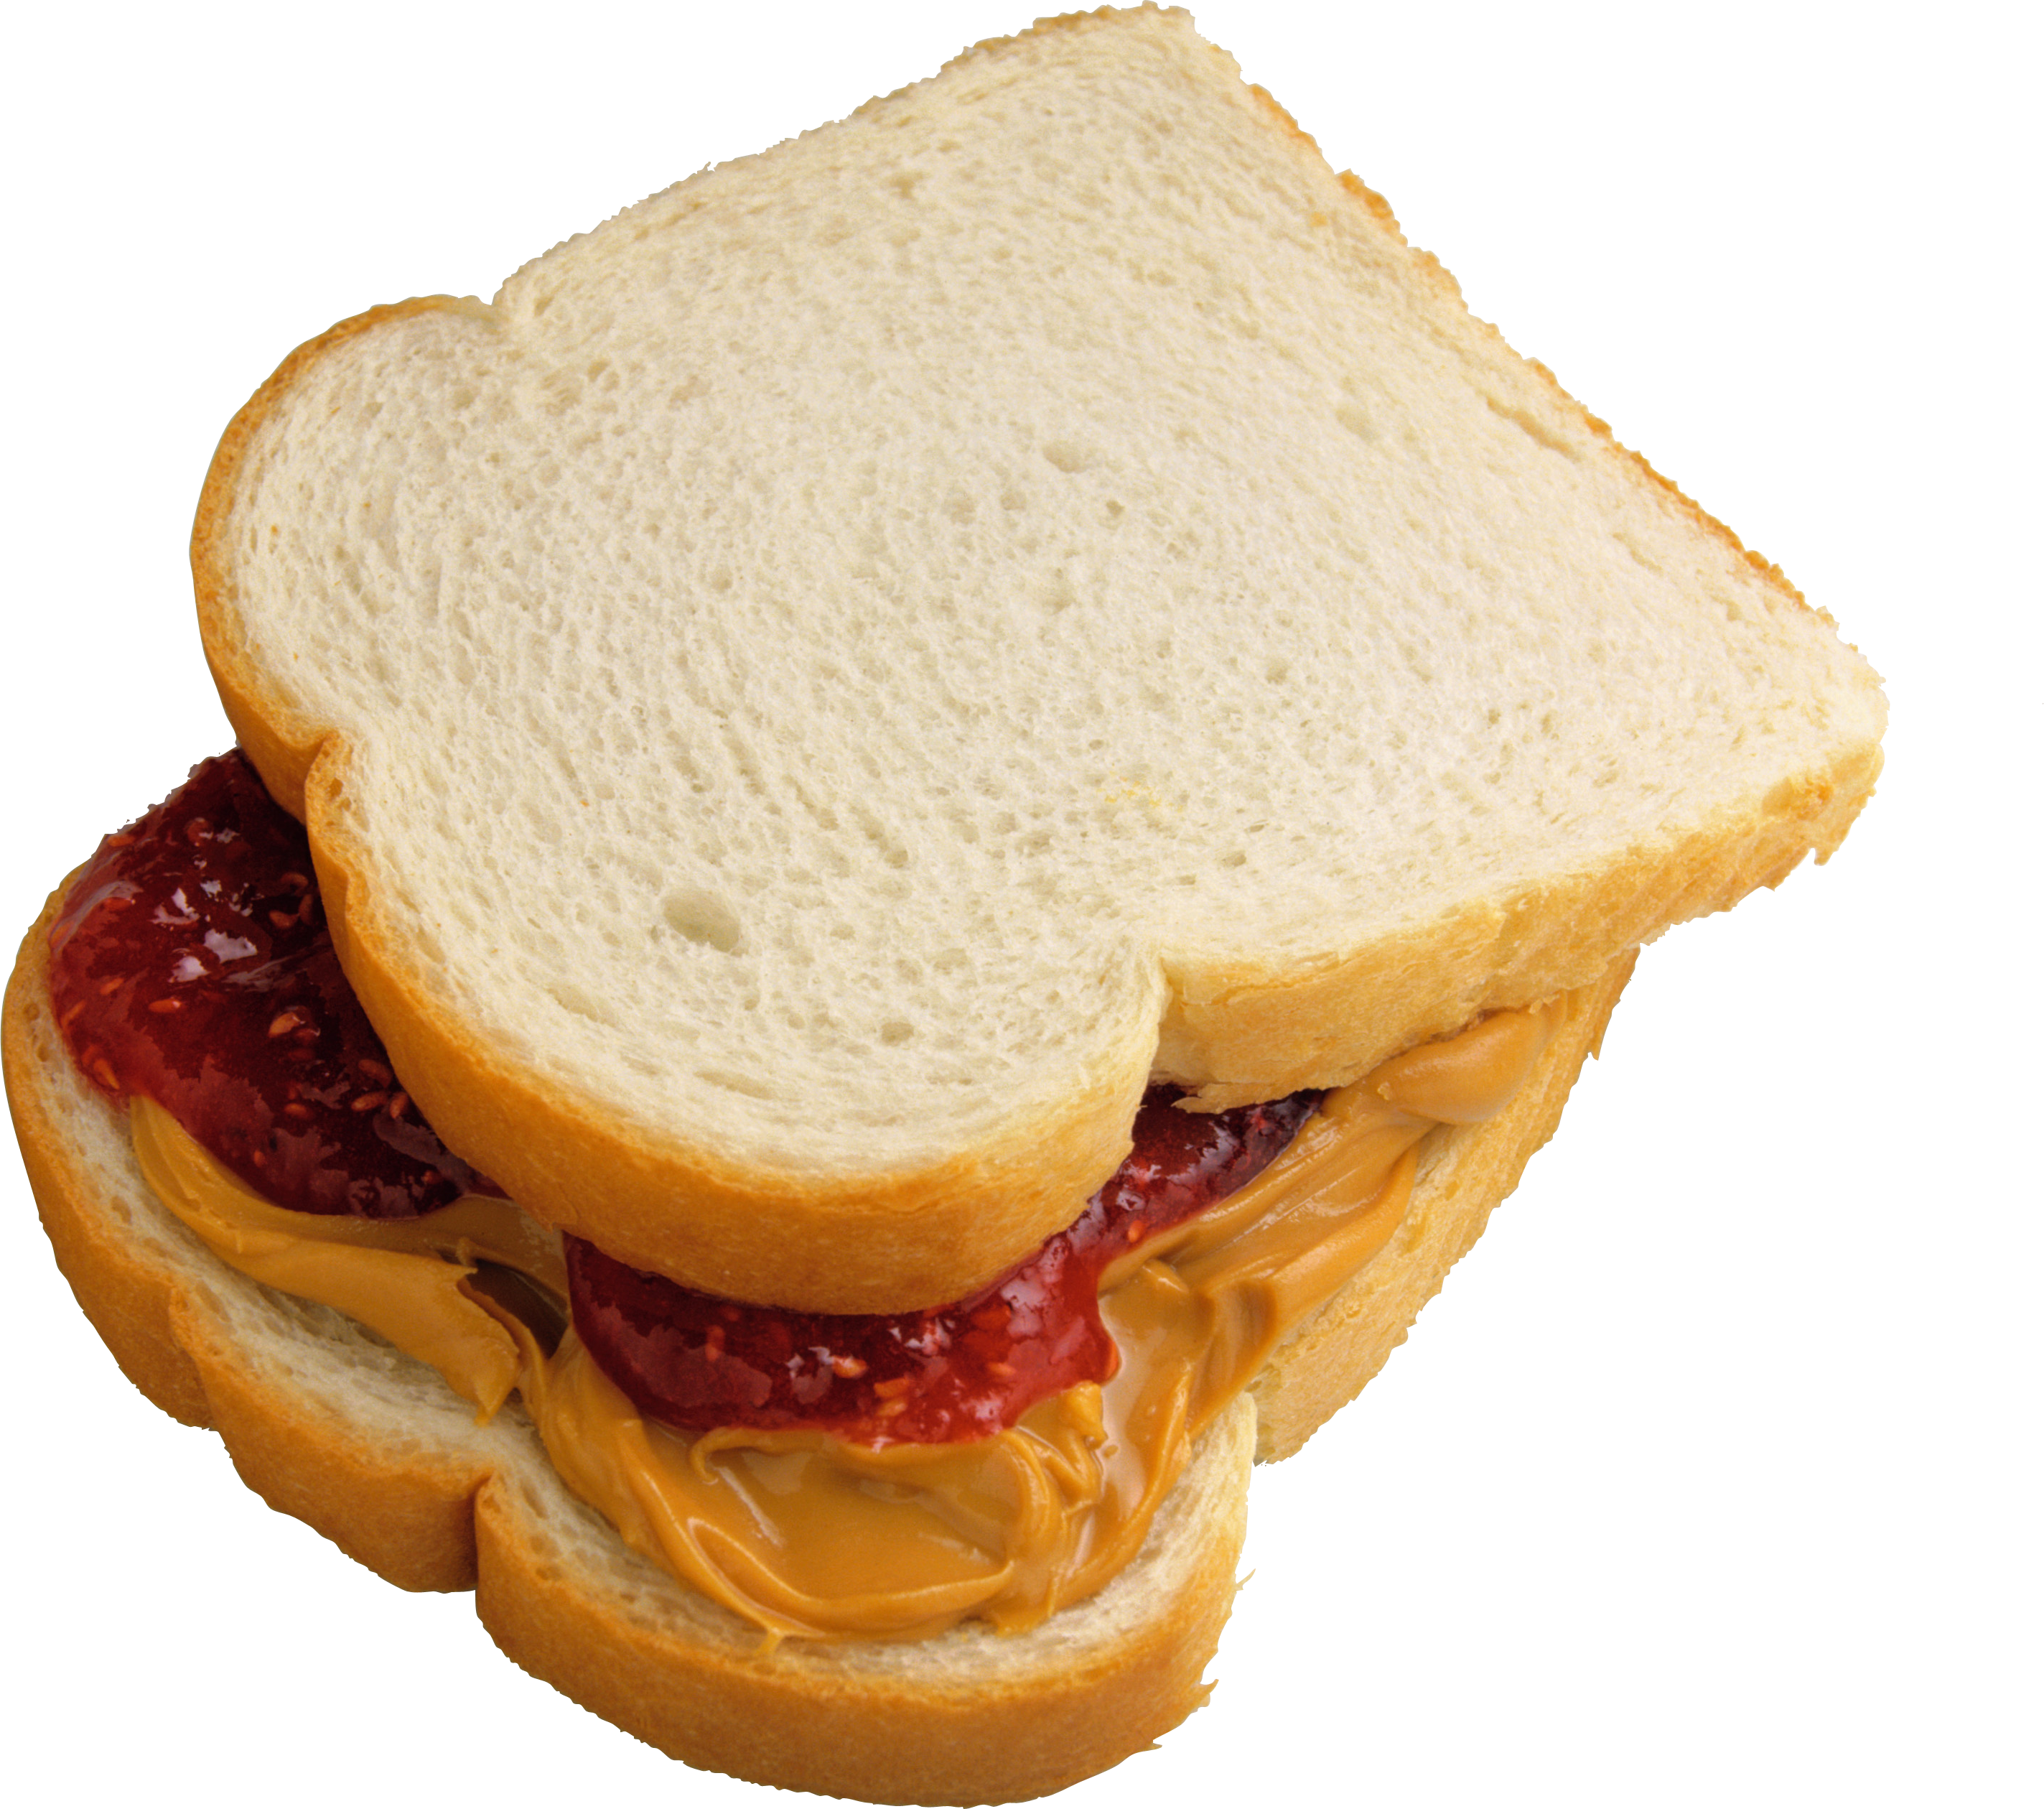 Burger And Sandwich Png Images Download Pictures Vector - Peanut Butter And Jelly Sandwich Png (2847x2519), Png Download